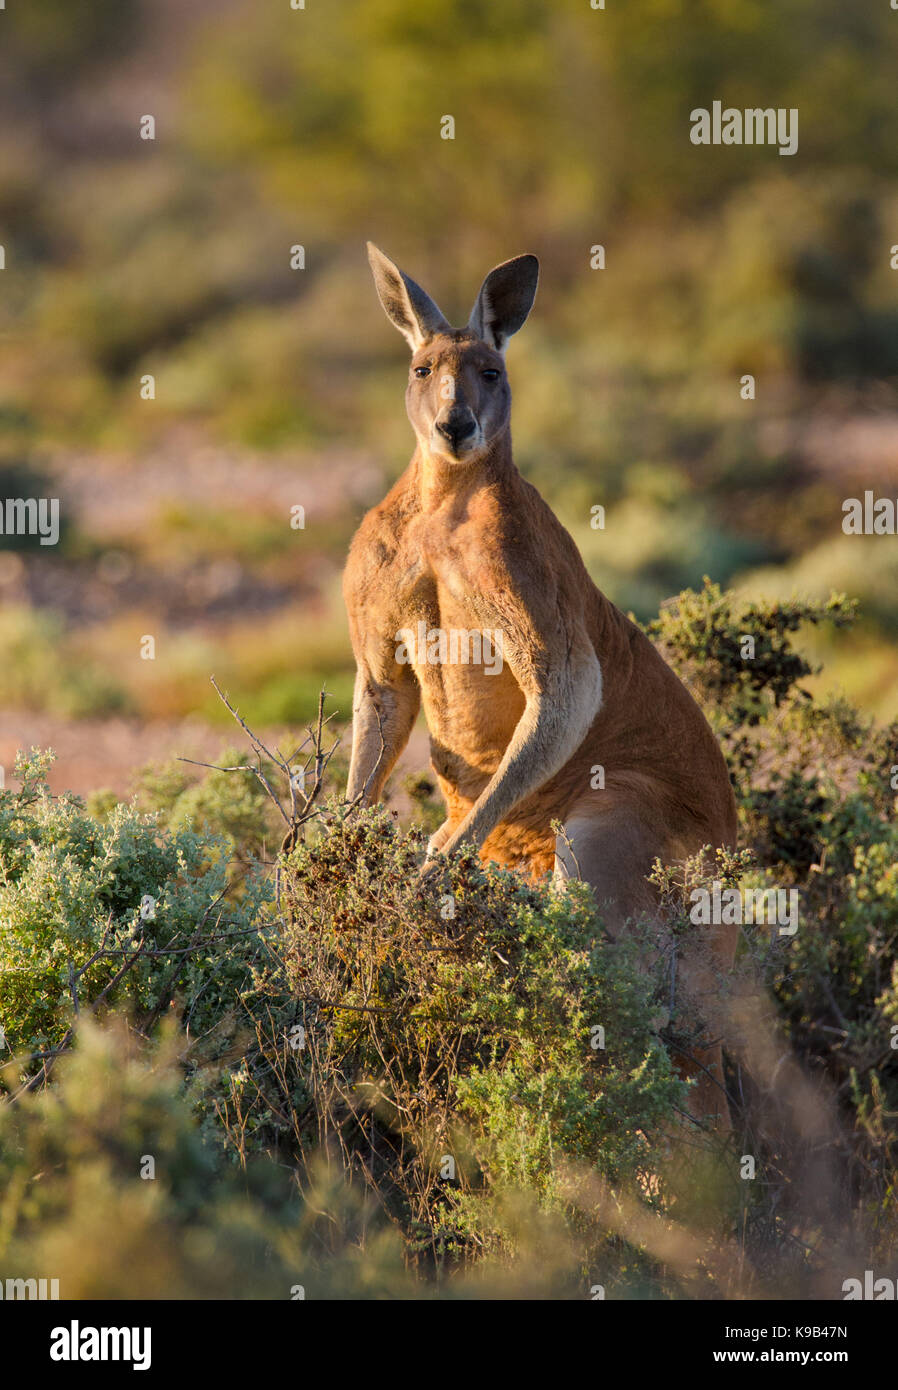 Kangourou rouge mâle (Macropus rufus), Parc National de Sturt, outback NSW, Australie Photo Stock